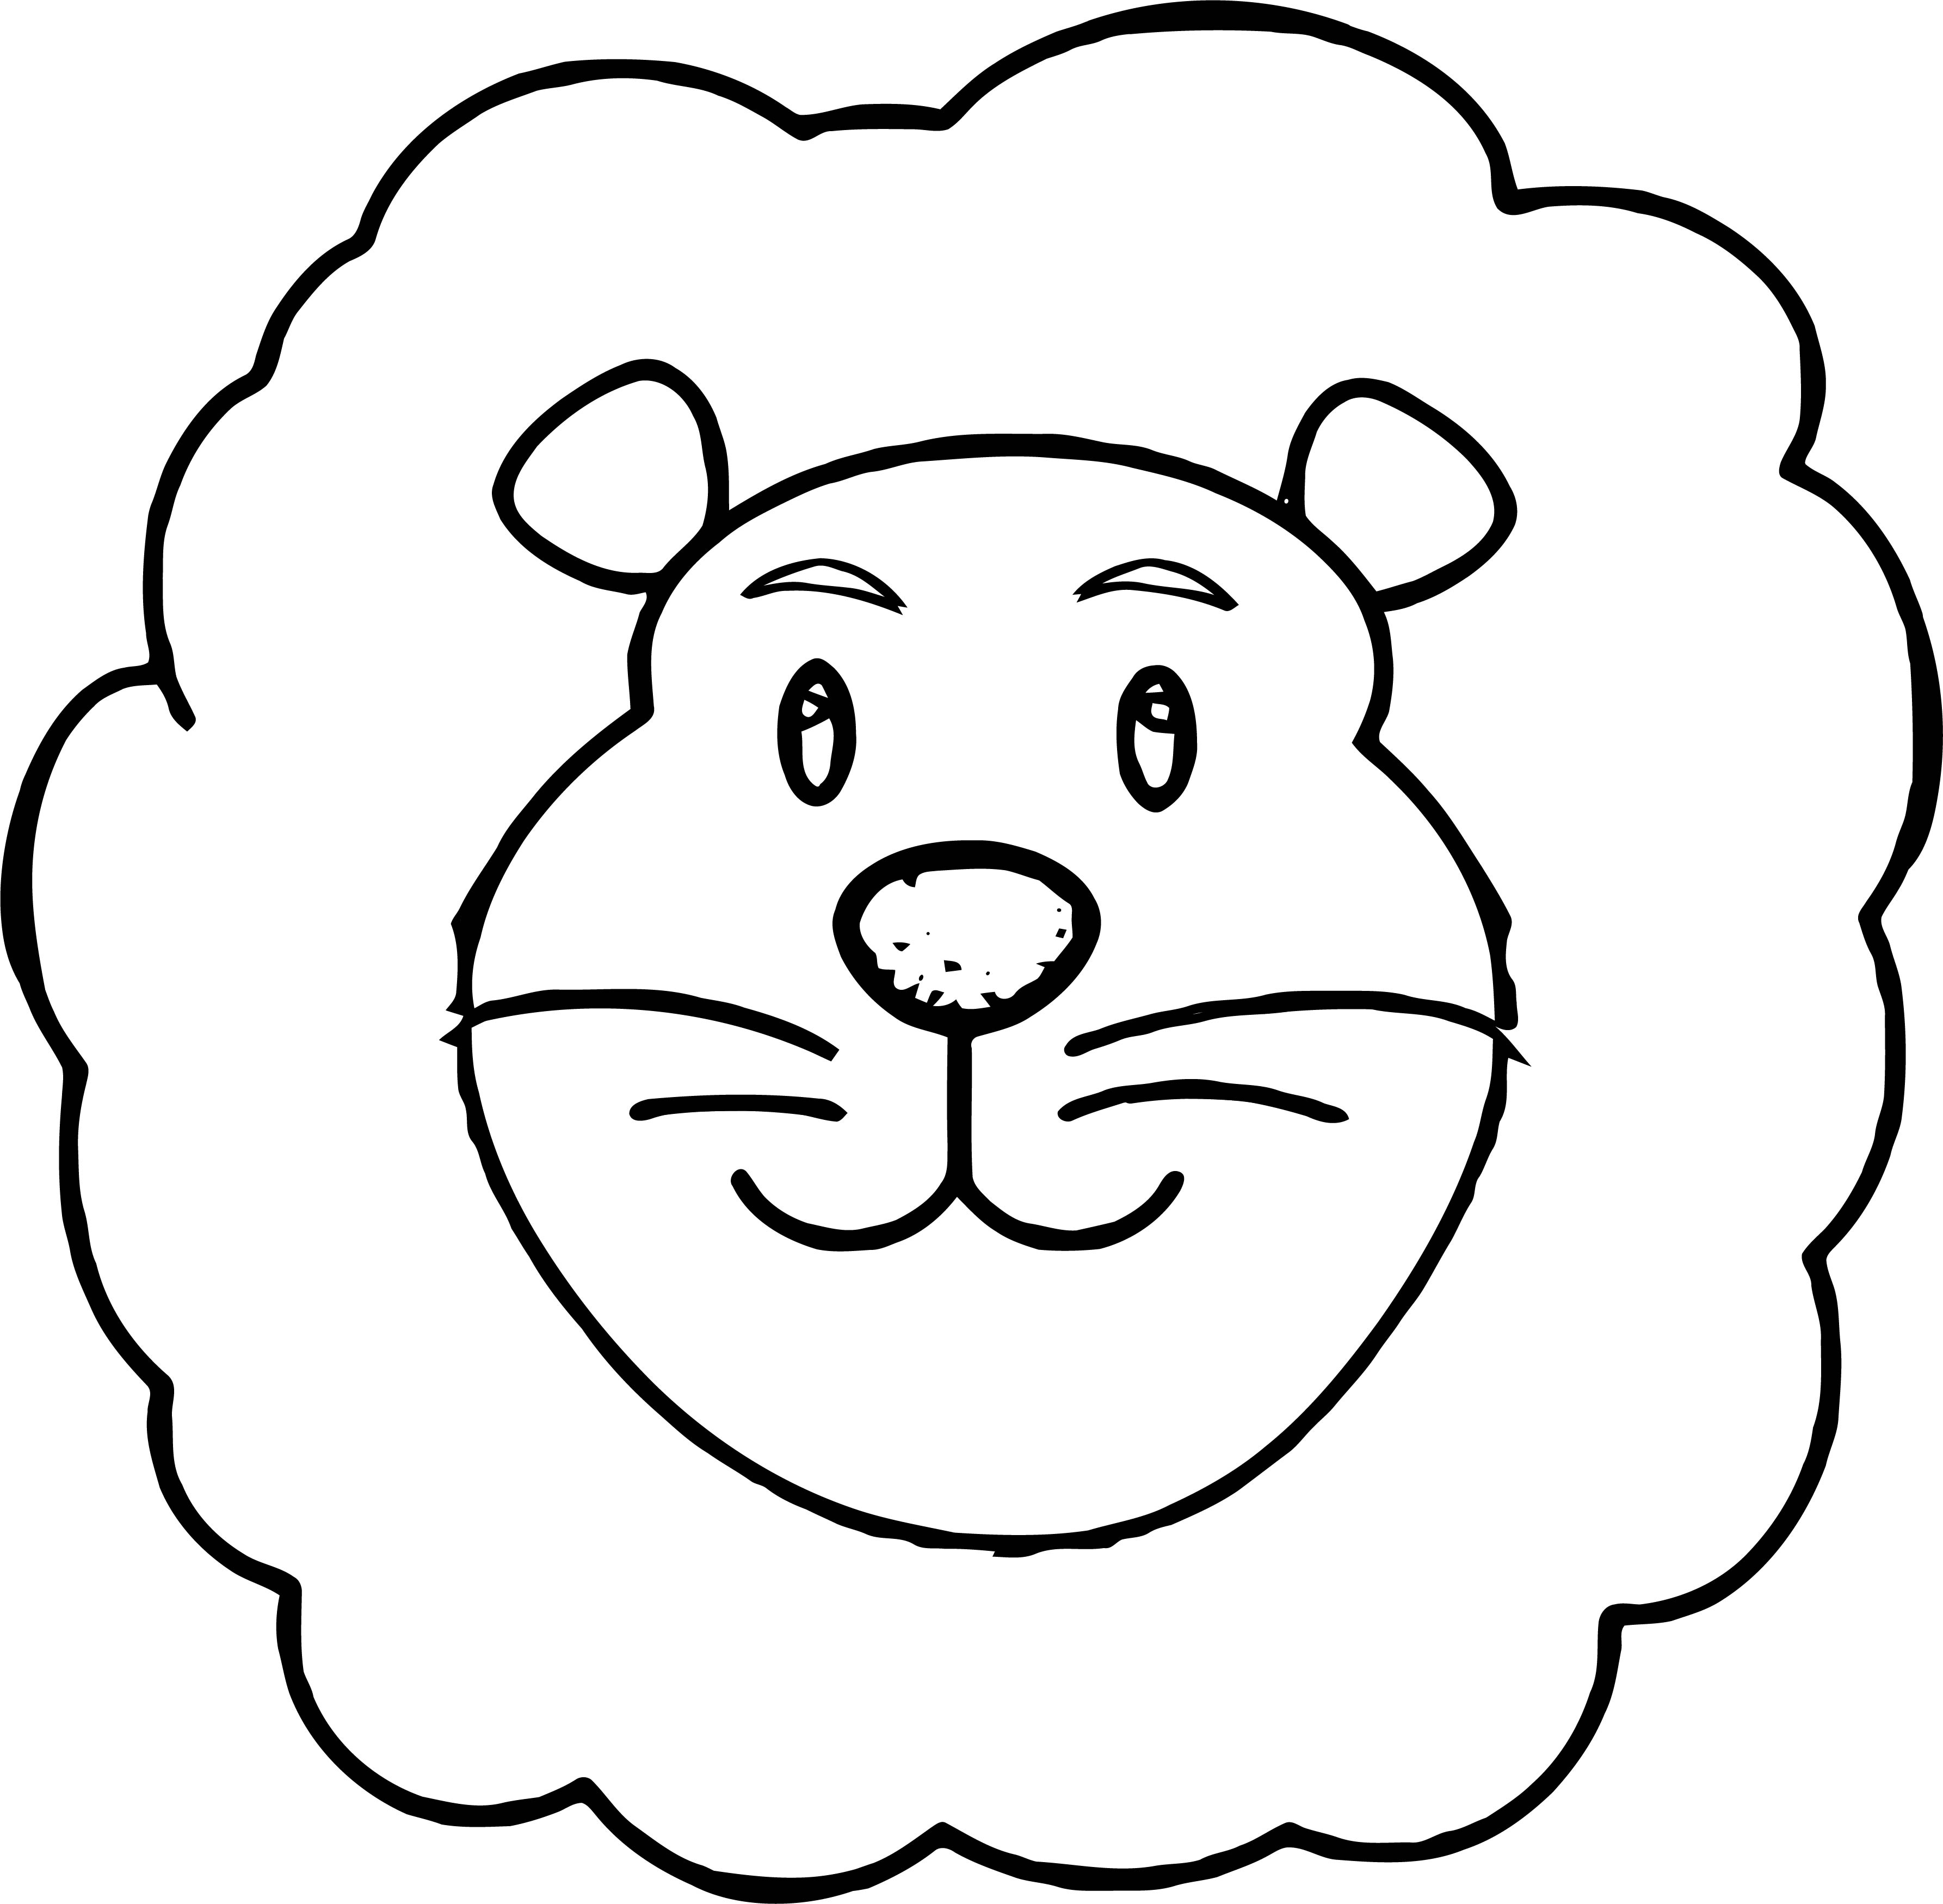 Lion Cute Smile Face Coloring Page